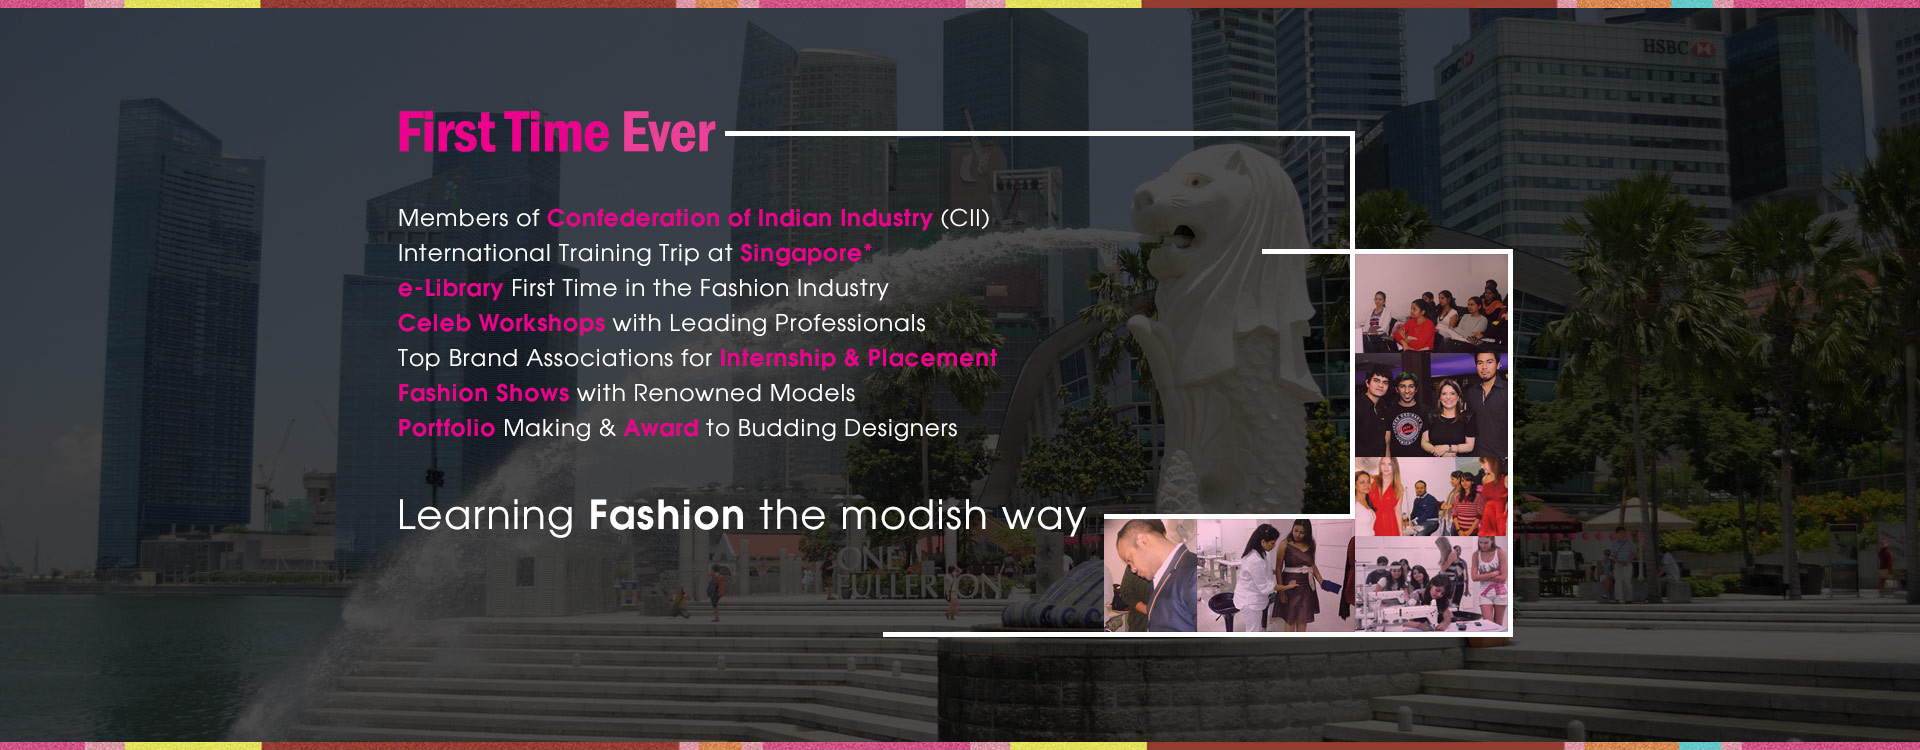 Fashionista - The School of Fashion Technology